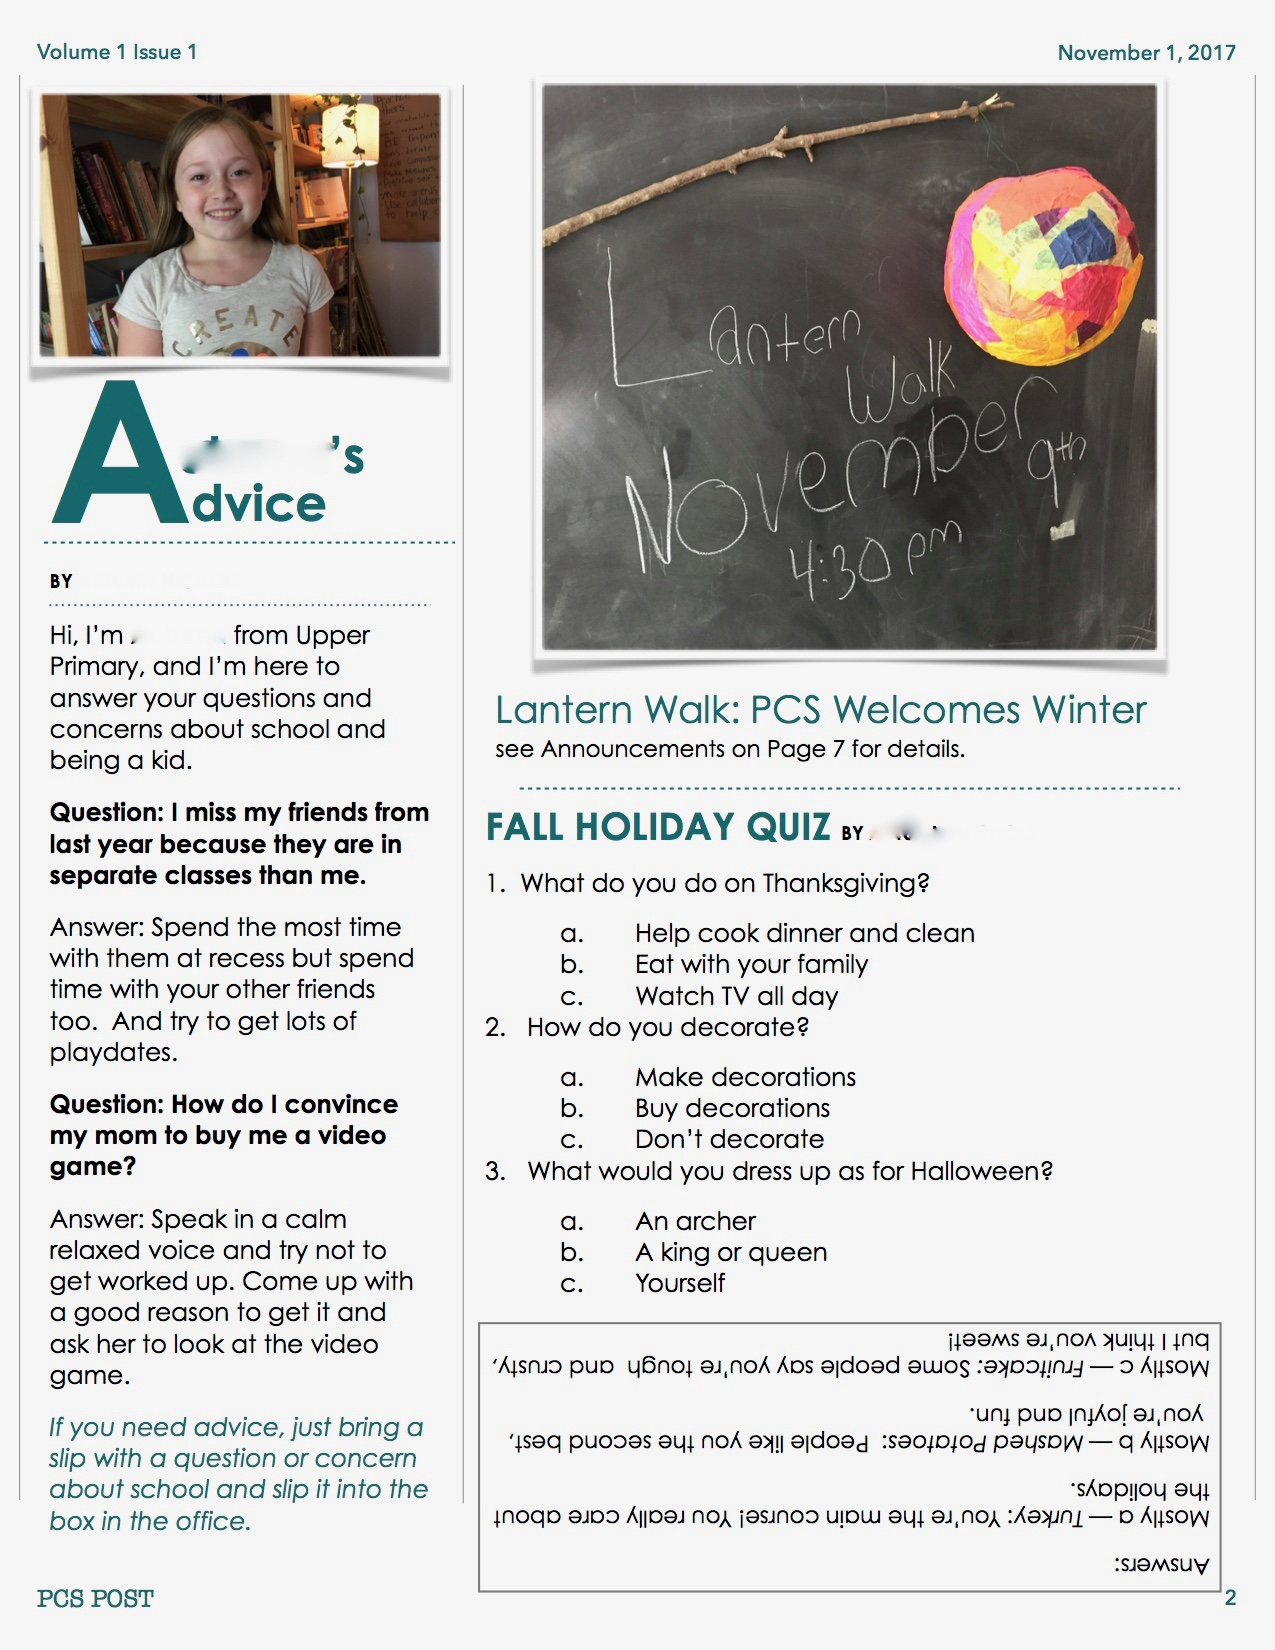 pcs post issue 1 page 2.jpg